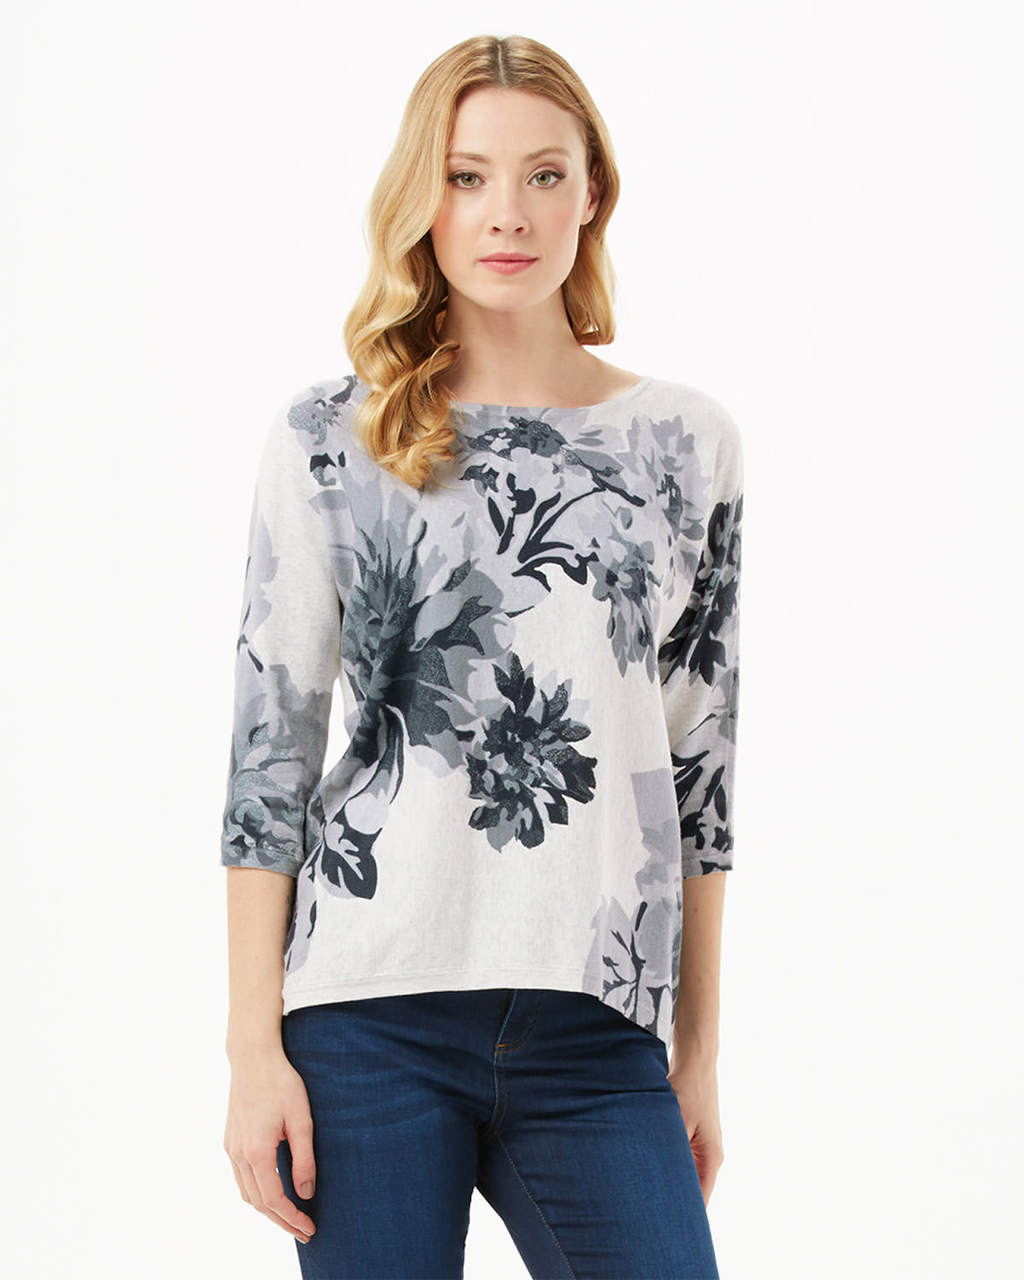 Breana Floral Print Knit - neckline: round neck; style: standard; predominant colour: royal blue; secondary colour: pale blue; occasions: casual, work, creative work; length: standard; fibres: cotton - 100%; fit: standard fit; sleeve length: 3/4 length; sleeve style: standard; texture group: knits/crochet; pattern type: knitted - fine stitch; pattern size: standard; pattern: florals; multicoloured: multicoloured; season: s/s 2016